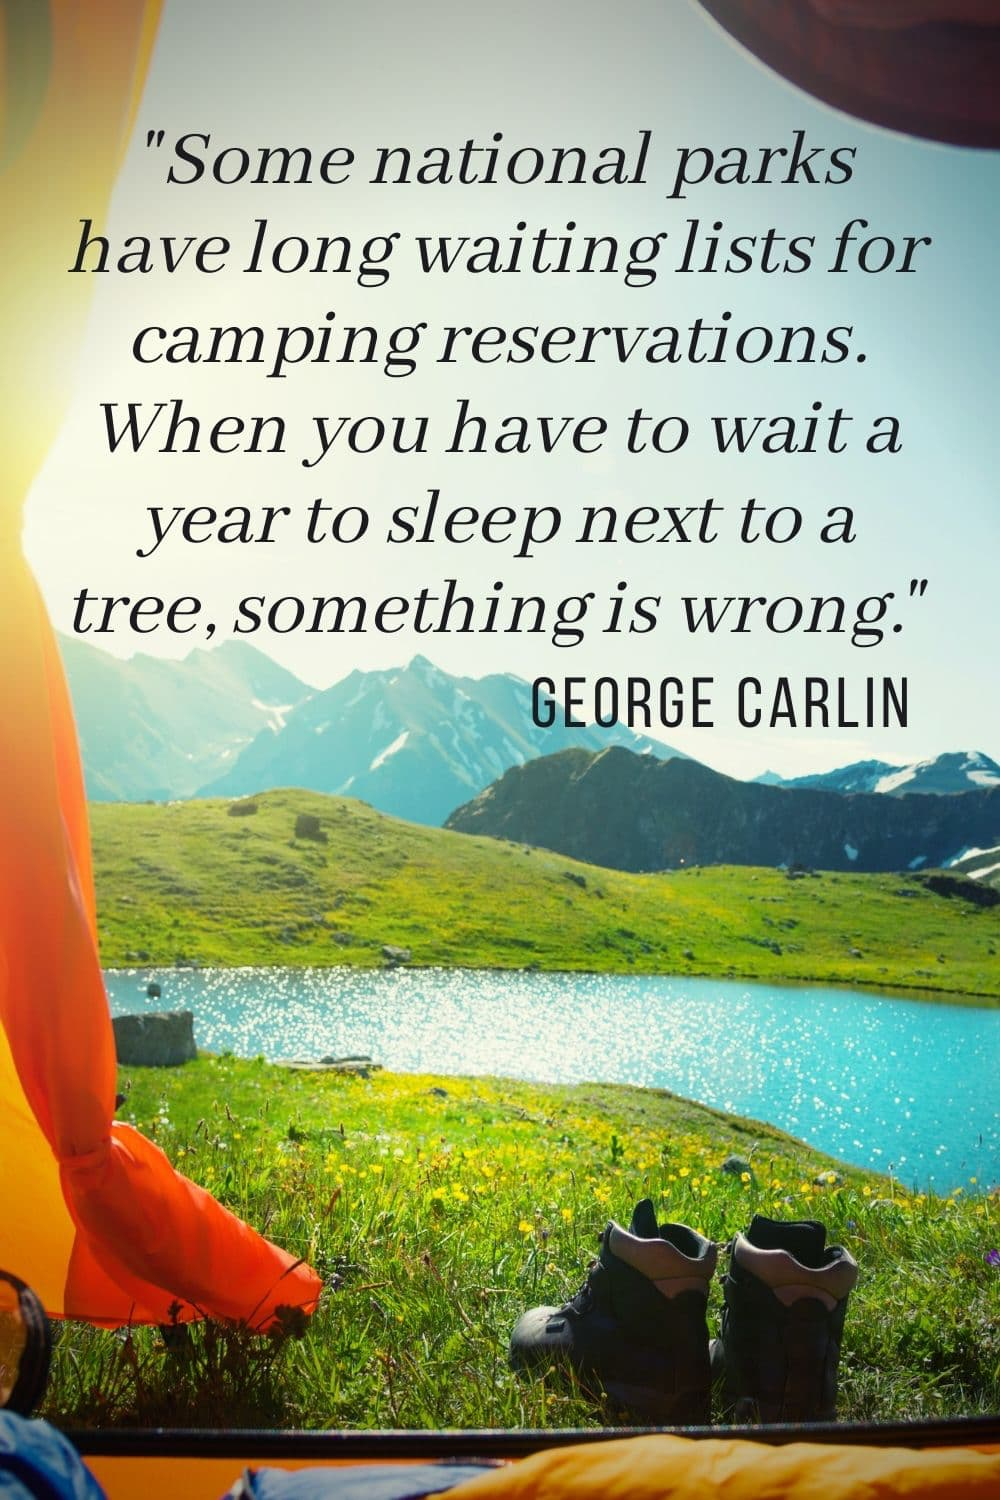 george carlin quote camping tent